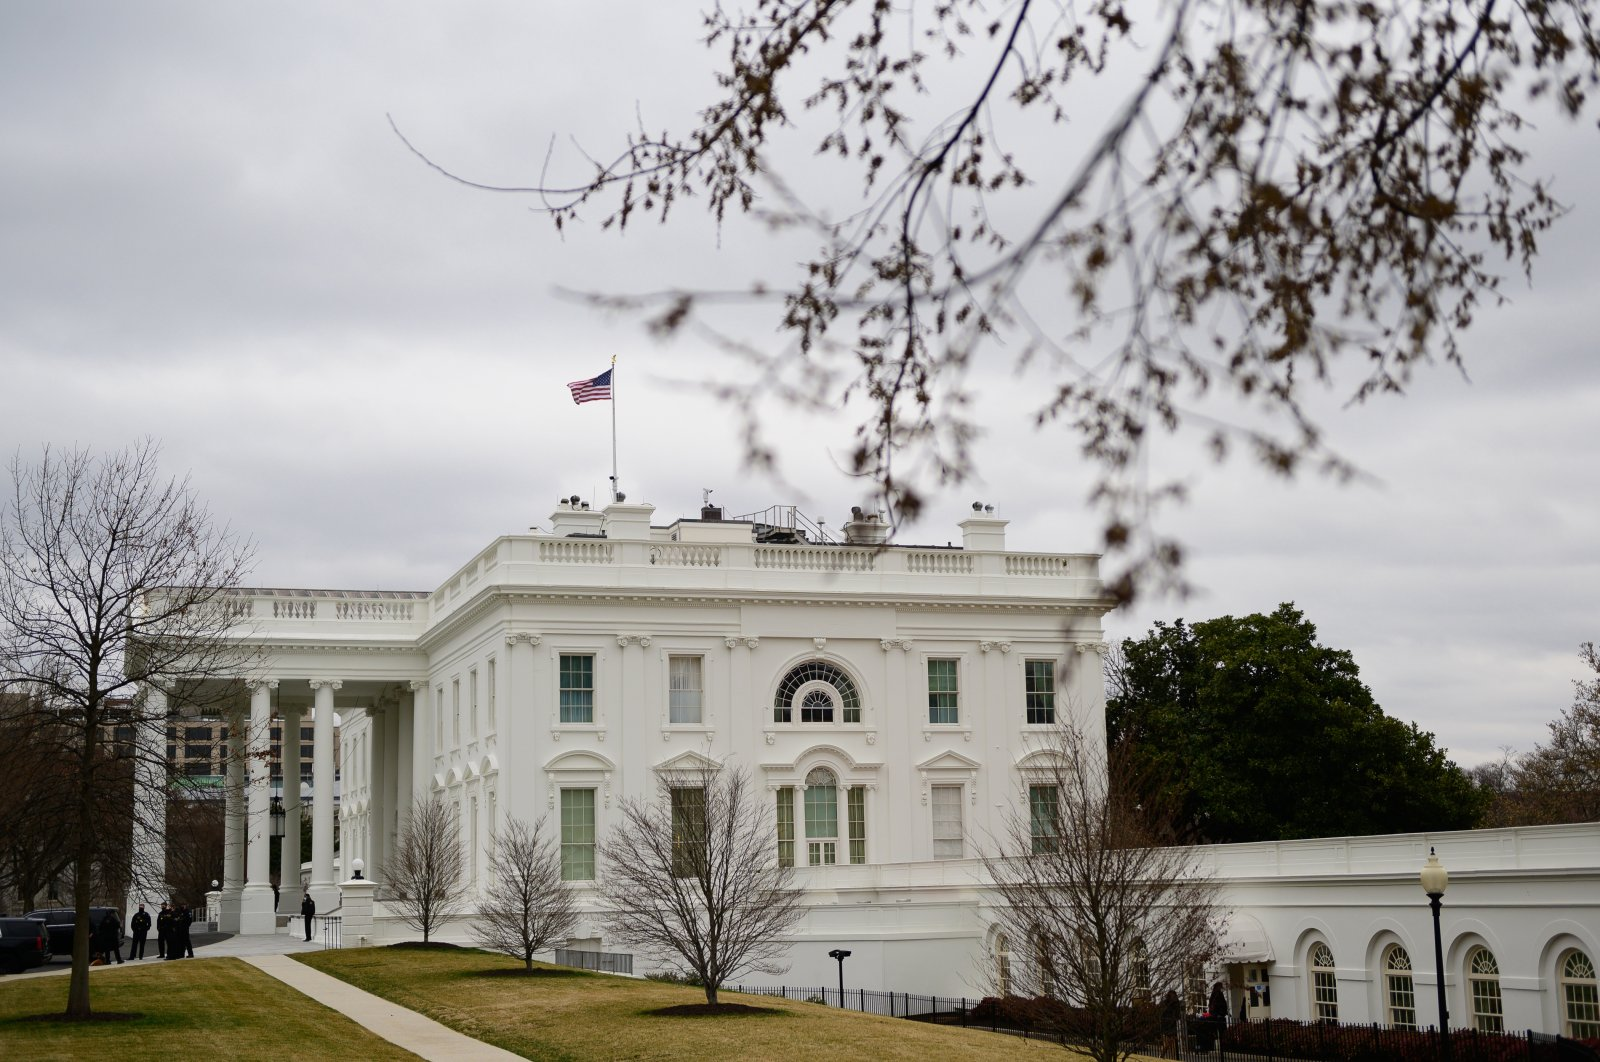 A general view of the White House in Washington, D.C., U.S., March 16, 2021. (Photo by Getty Images)